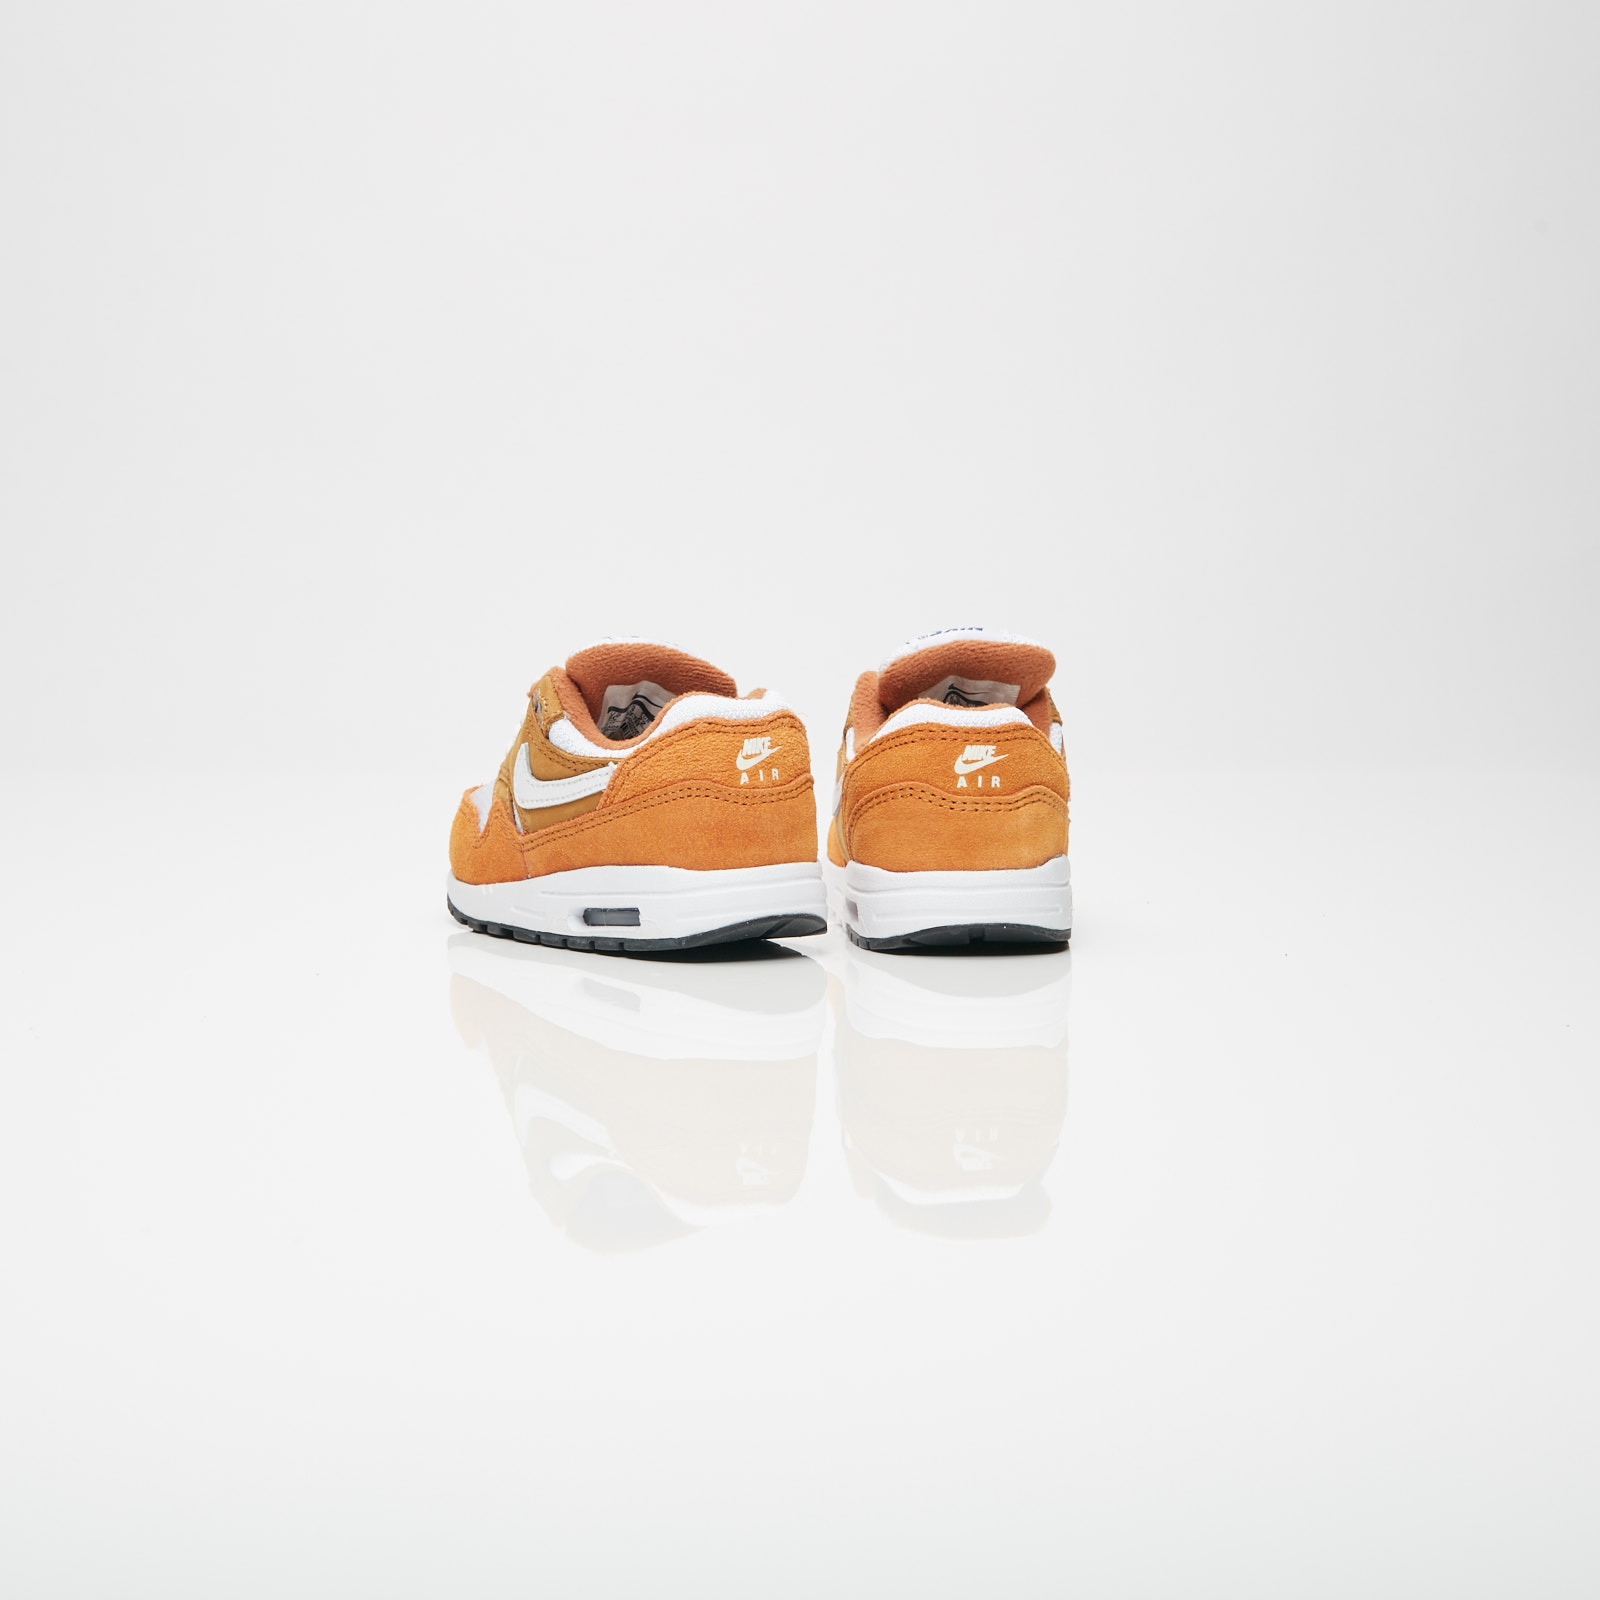 Nike Air Max 1 Premium Retro (TD) At3360 700